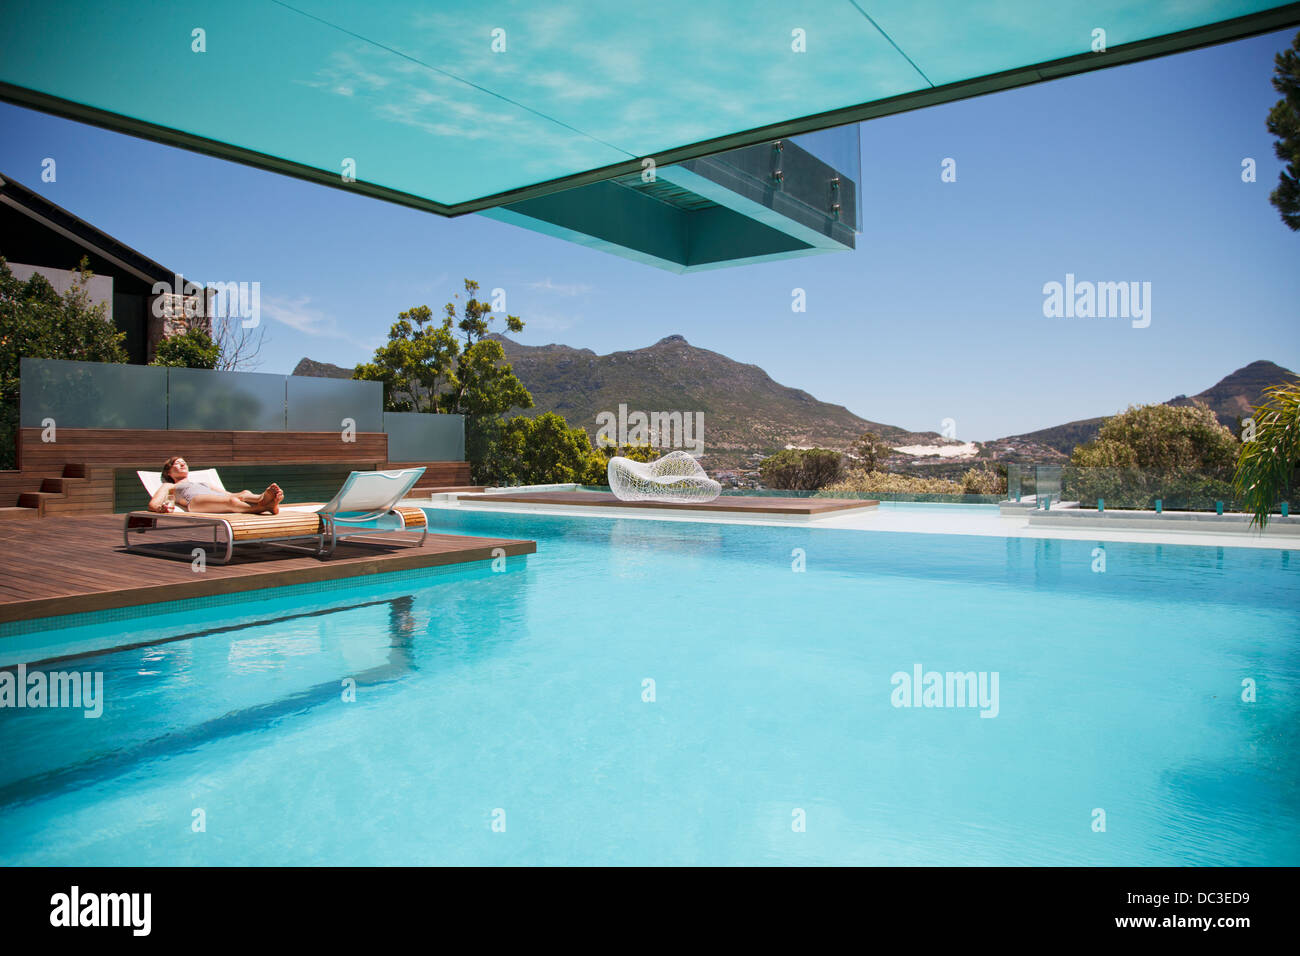 Woman sunbathing on lounge chair at poolside with mountain view Stock Photo